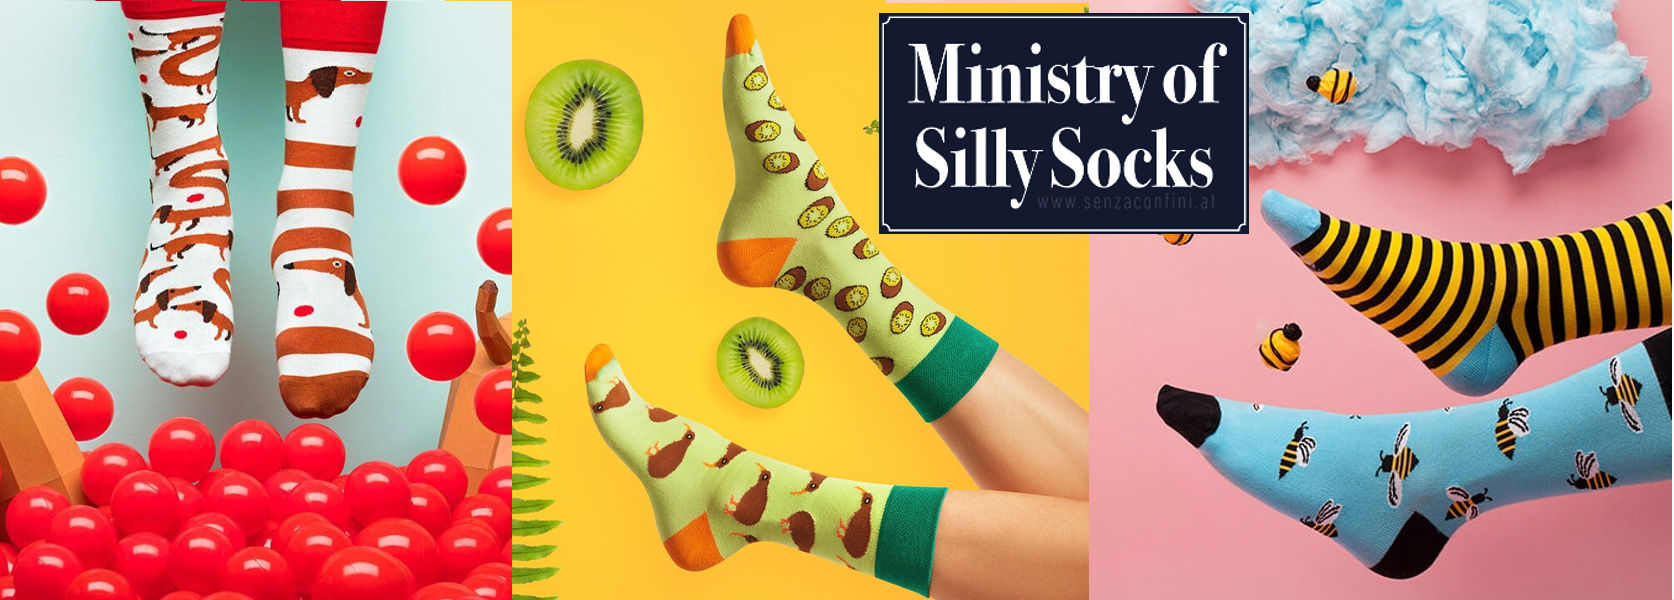 Ministry of silly socks